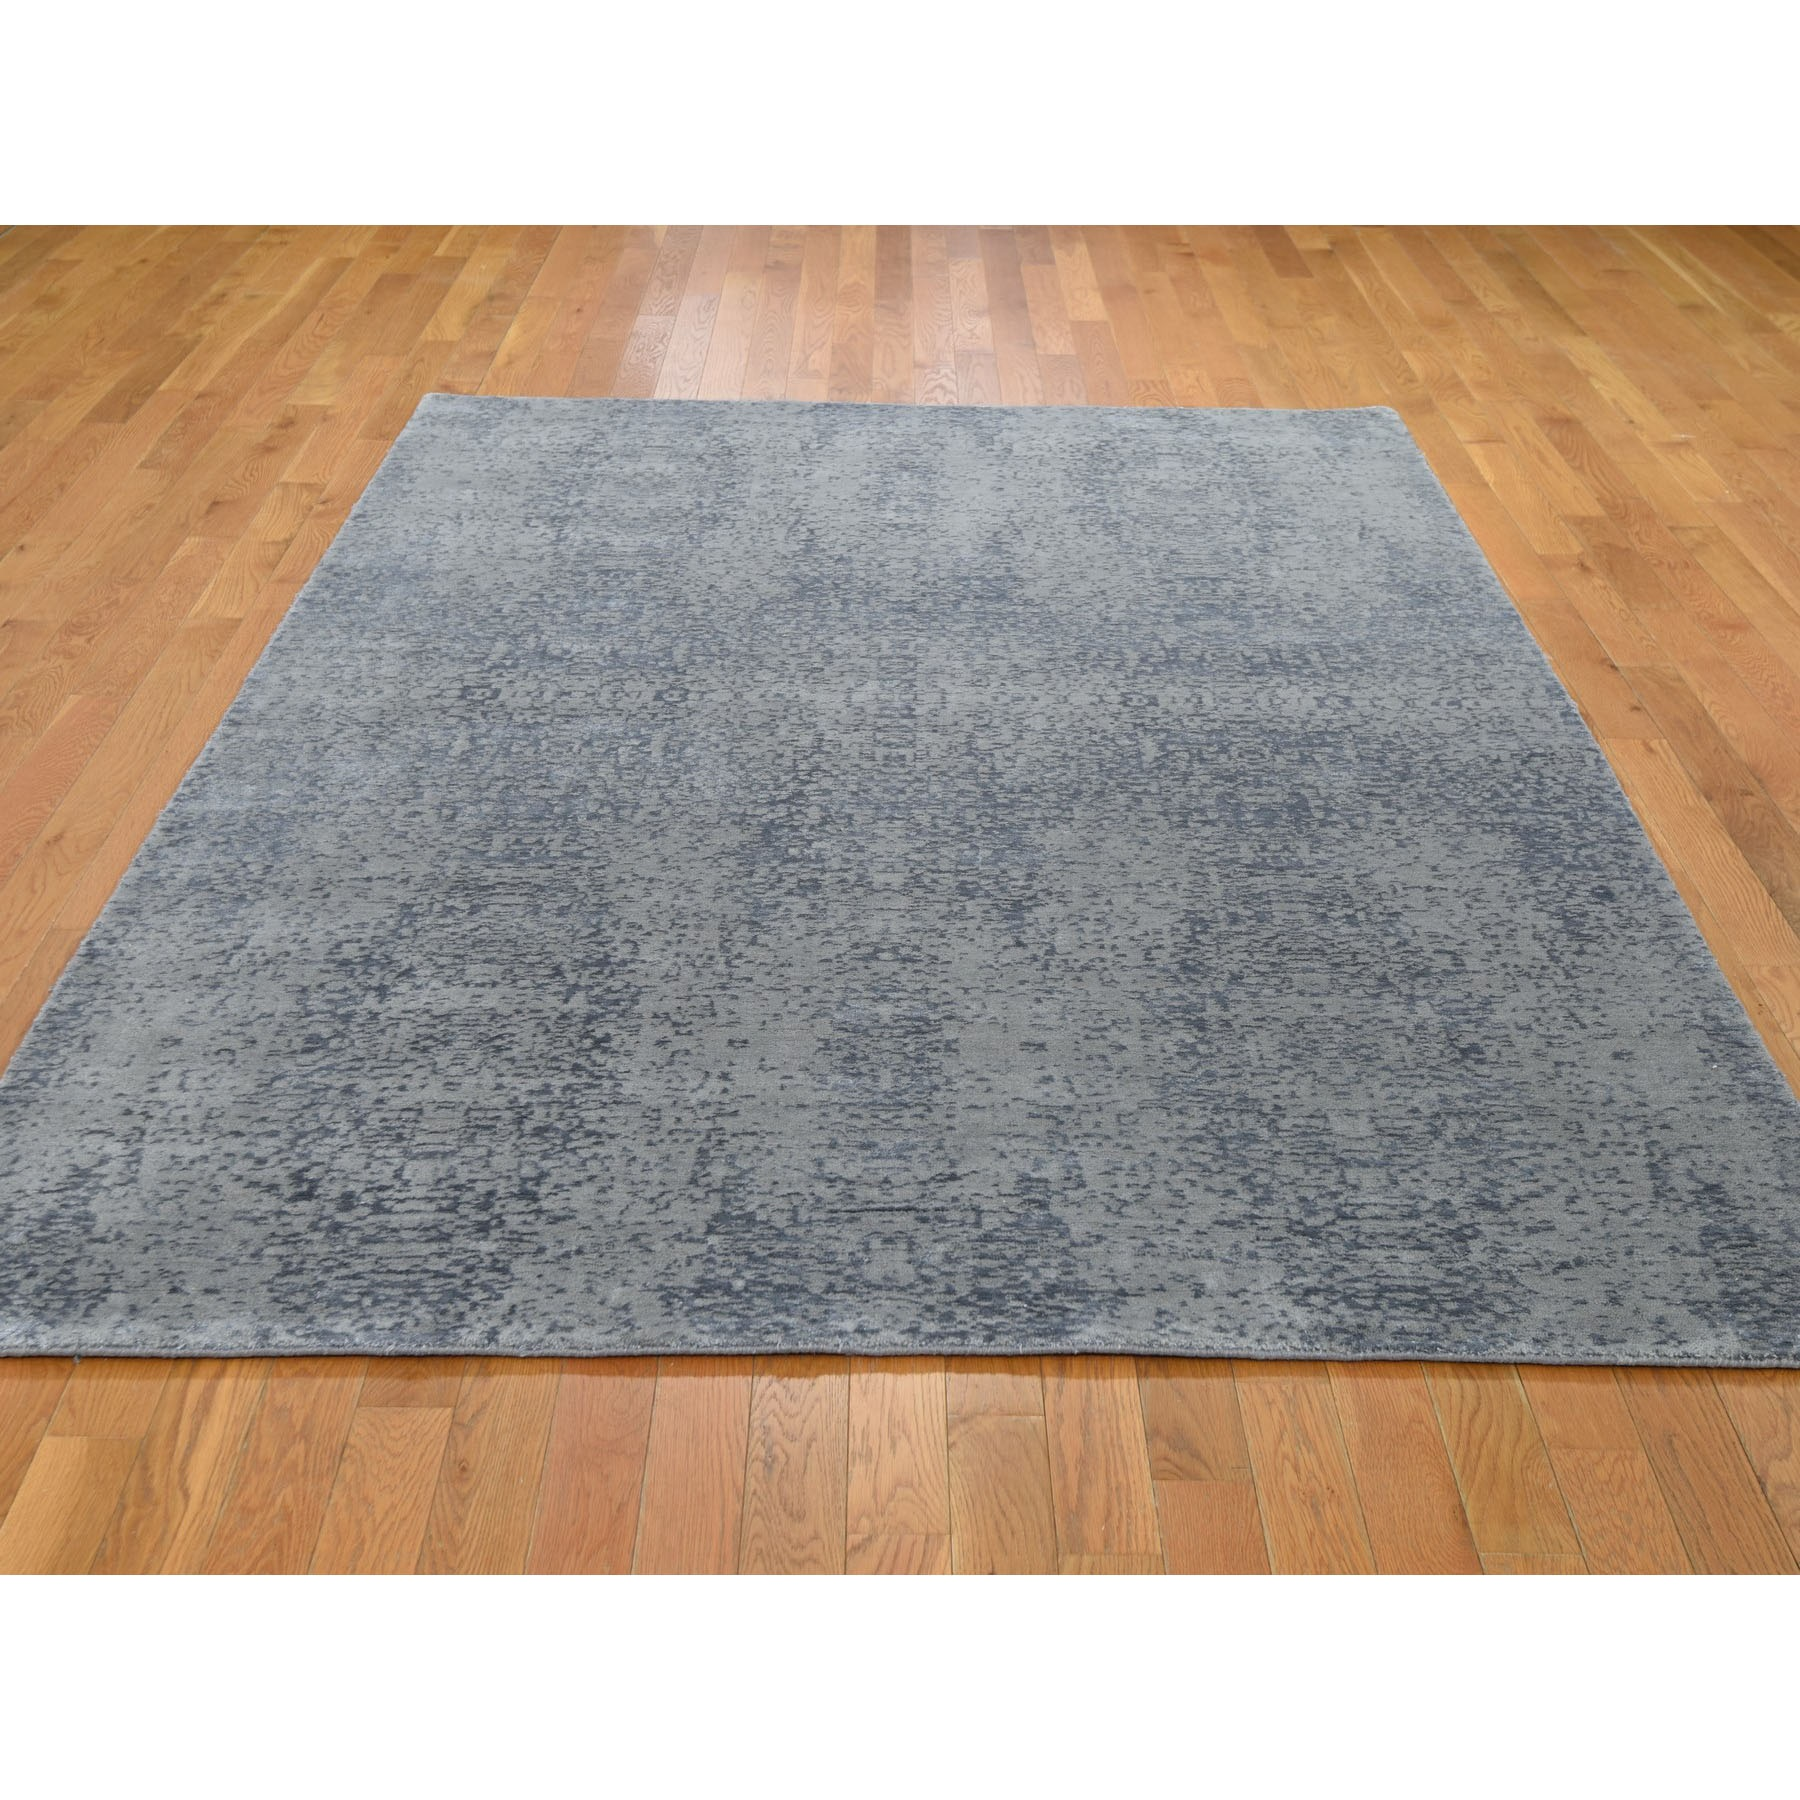 6'x9' Gray Abstract Design Wool And Silk Hand Loomed Oriental Rug